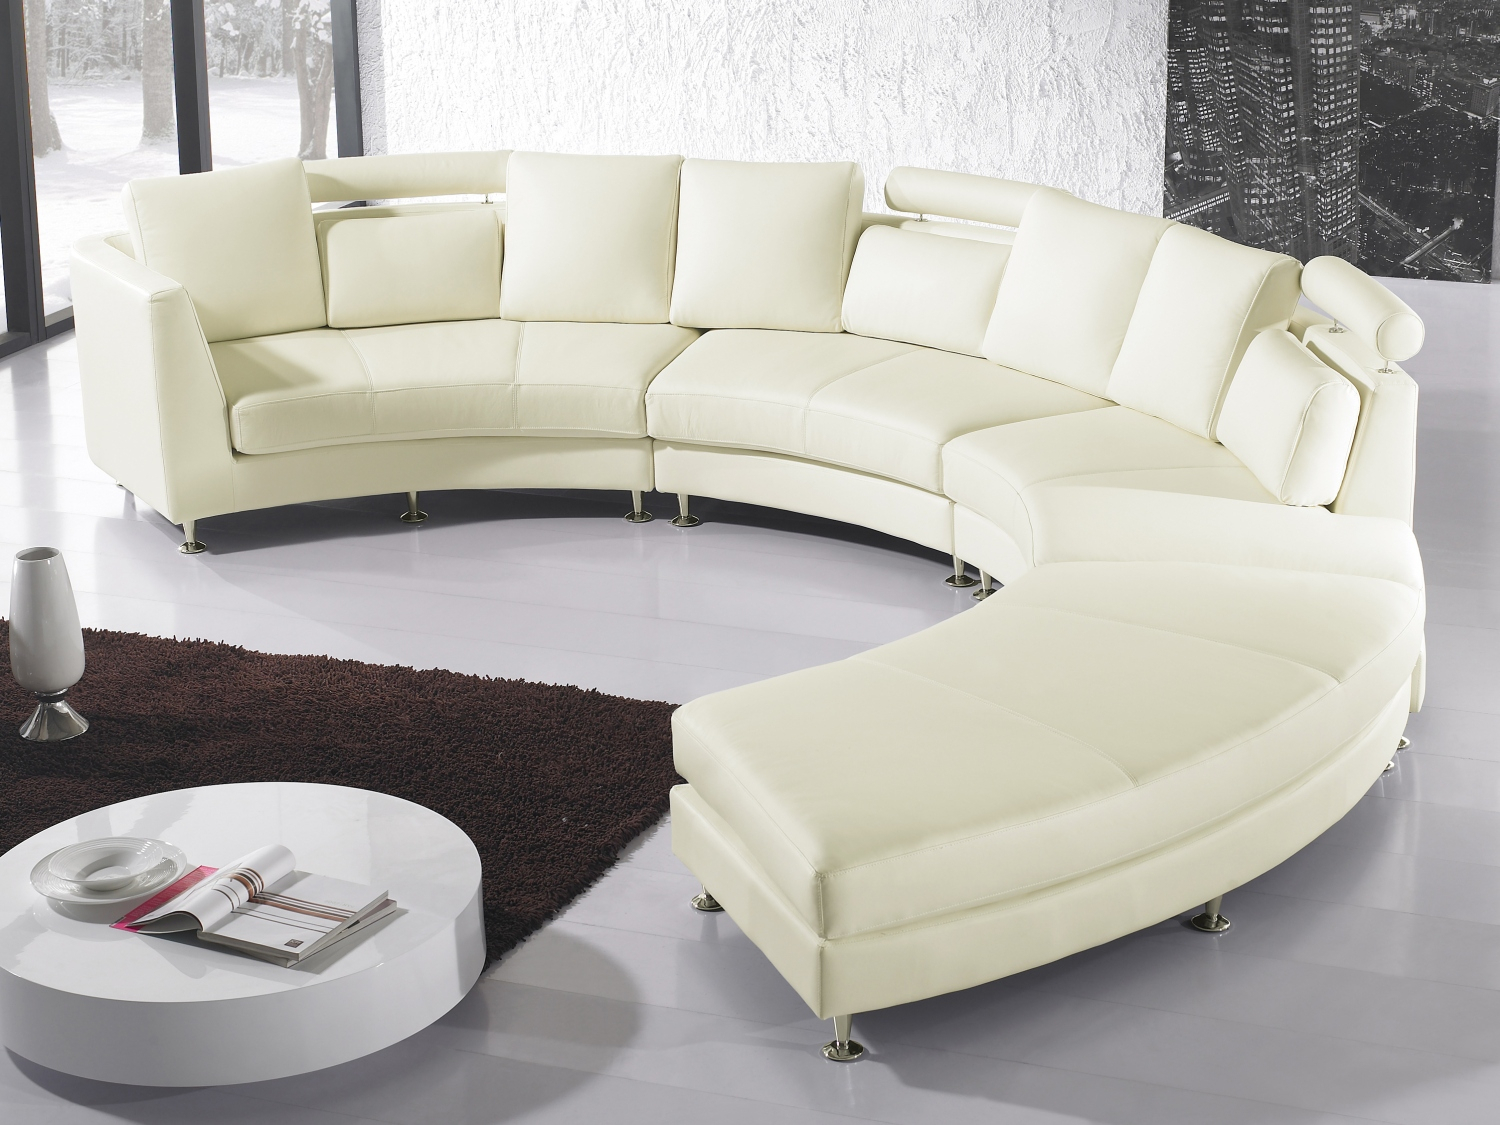 Cream Leather Corner Sofa 7 Seater Couch Large Circle Within Leather Corner Sofas (View 3 of 15)